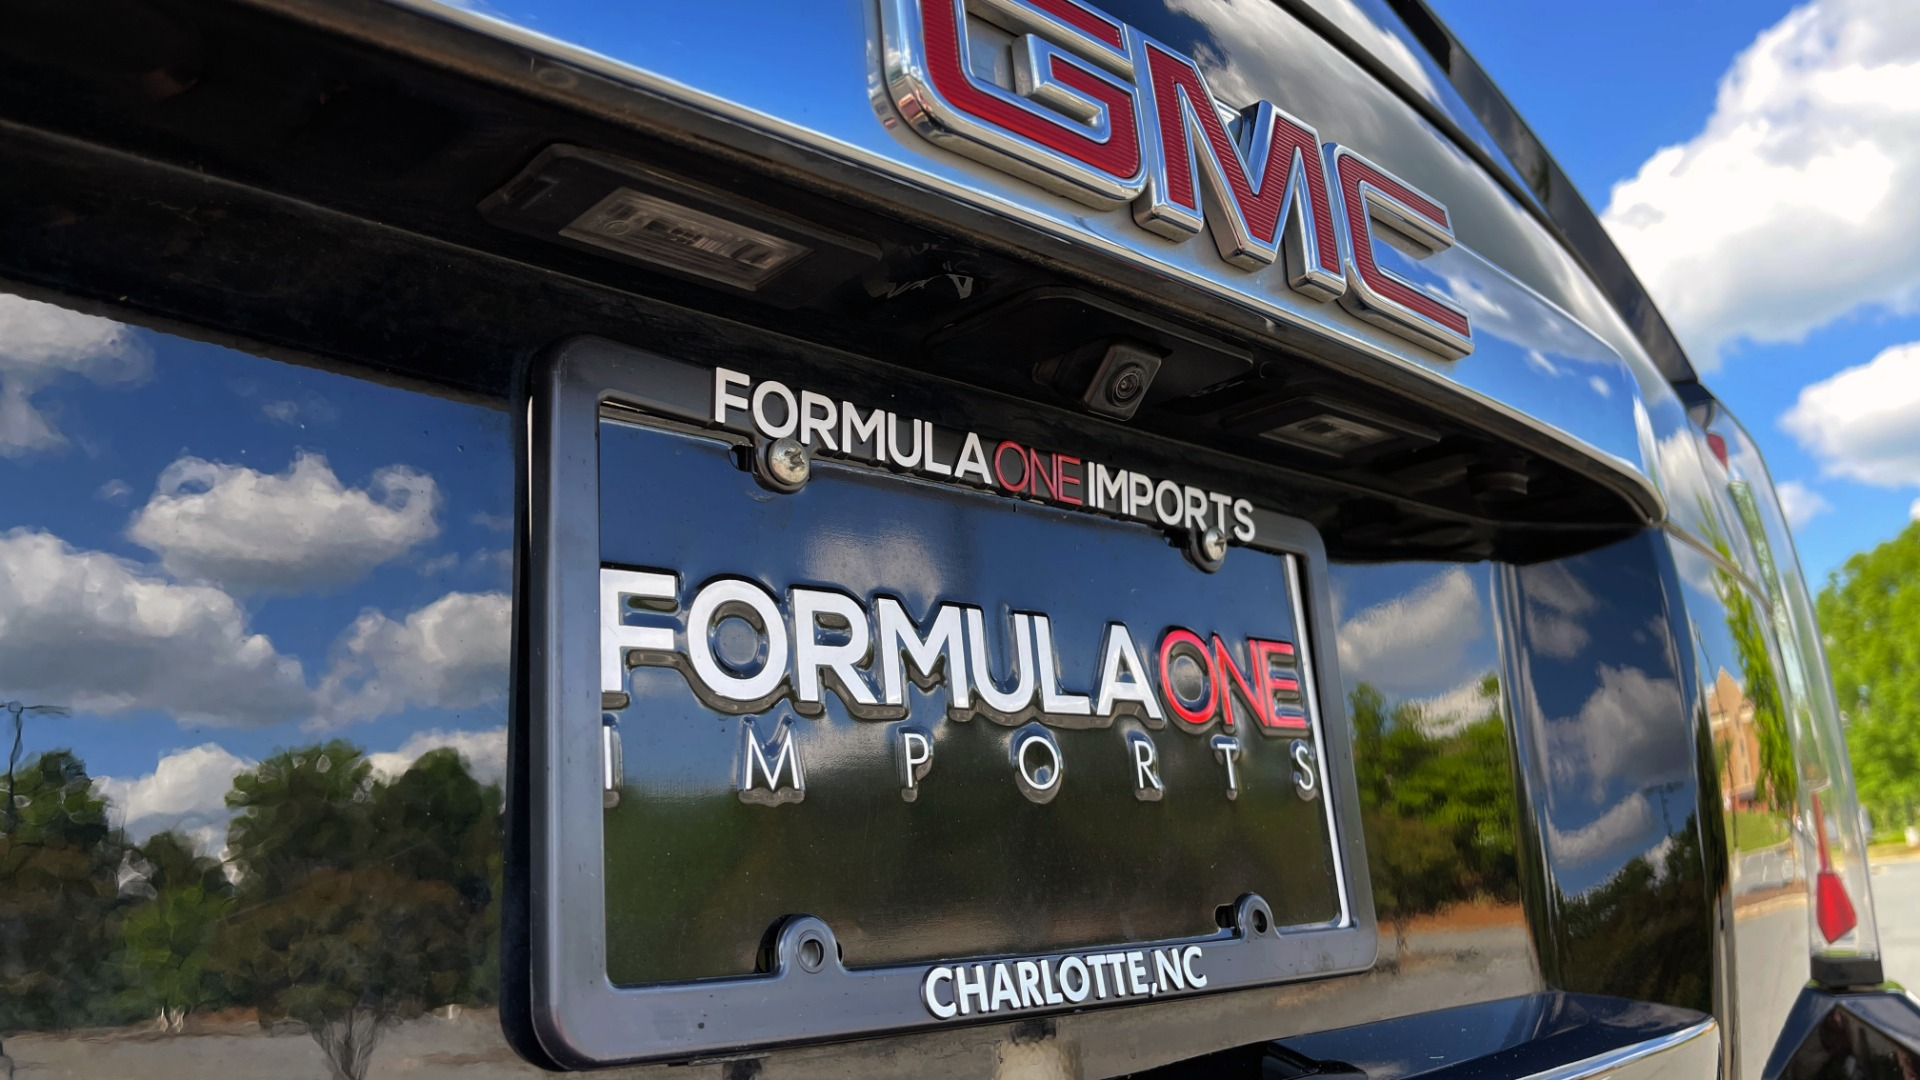 Used 2017 GMC YUKON DENALI 4WD / OPEN ROAD / NAV / ENTERTAINMENT / SUNROOF / ADAPT CRUISE for sale Sold at Formula Imports in Charlotte NC 28227 30